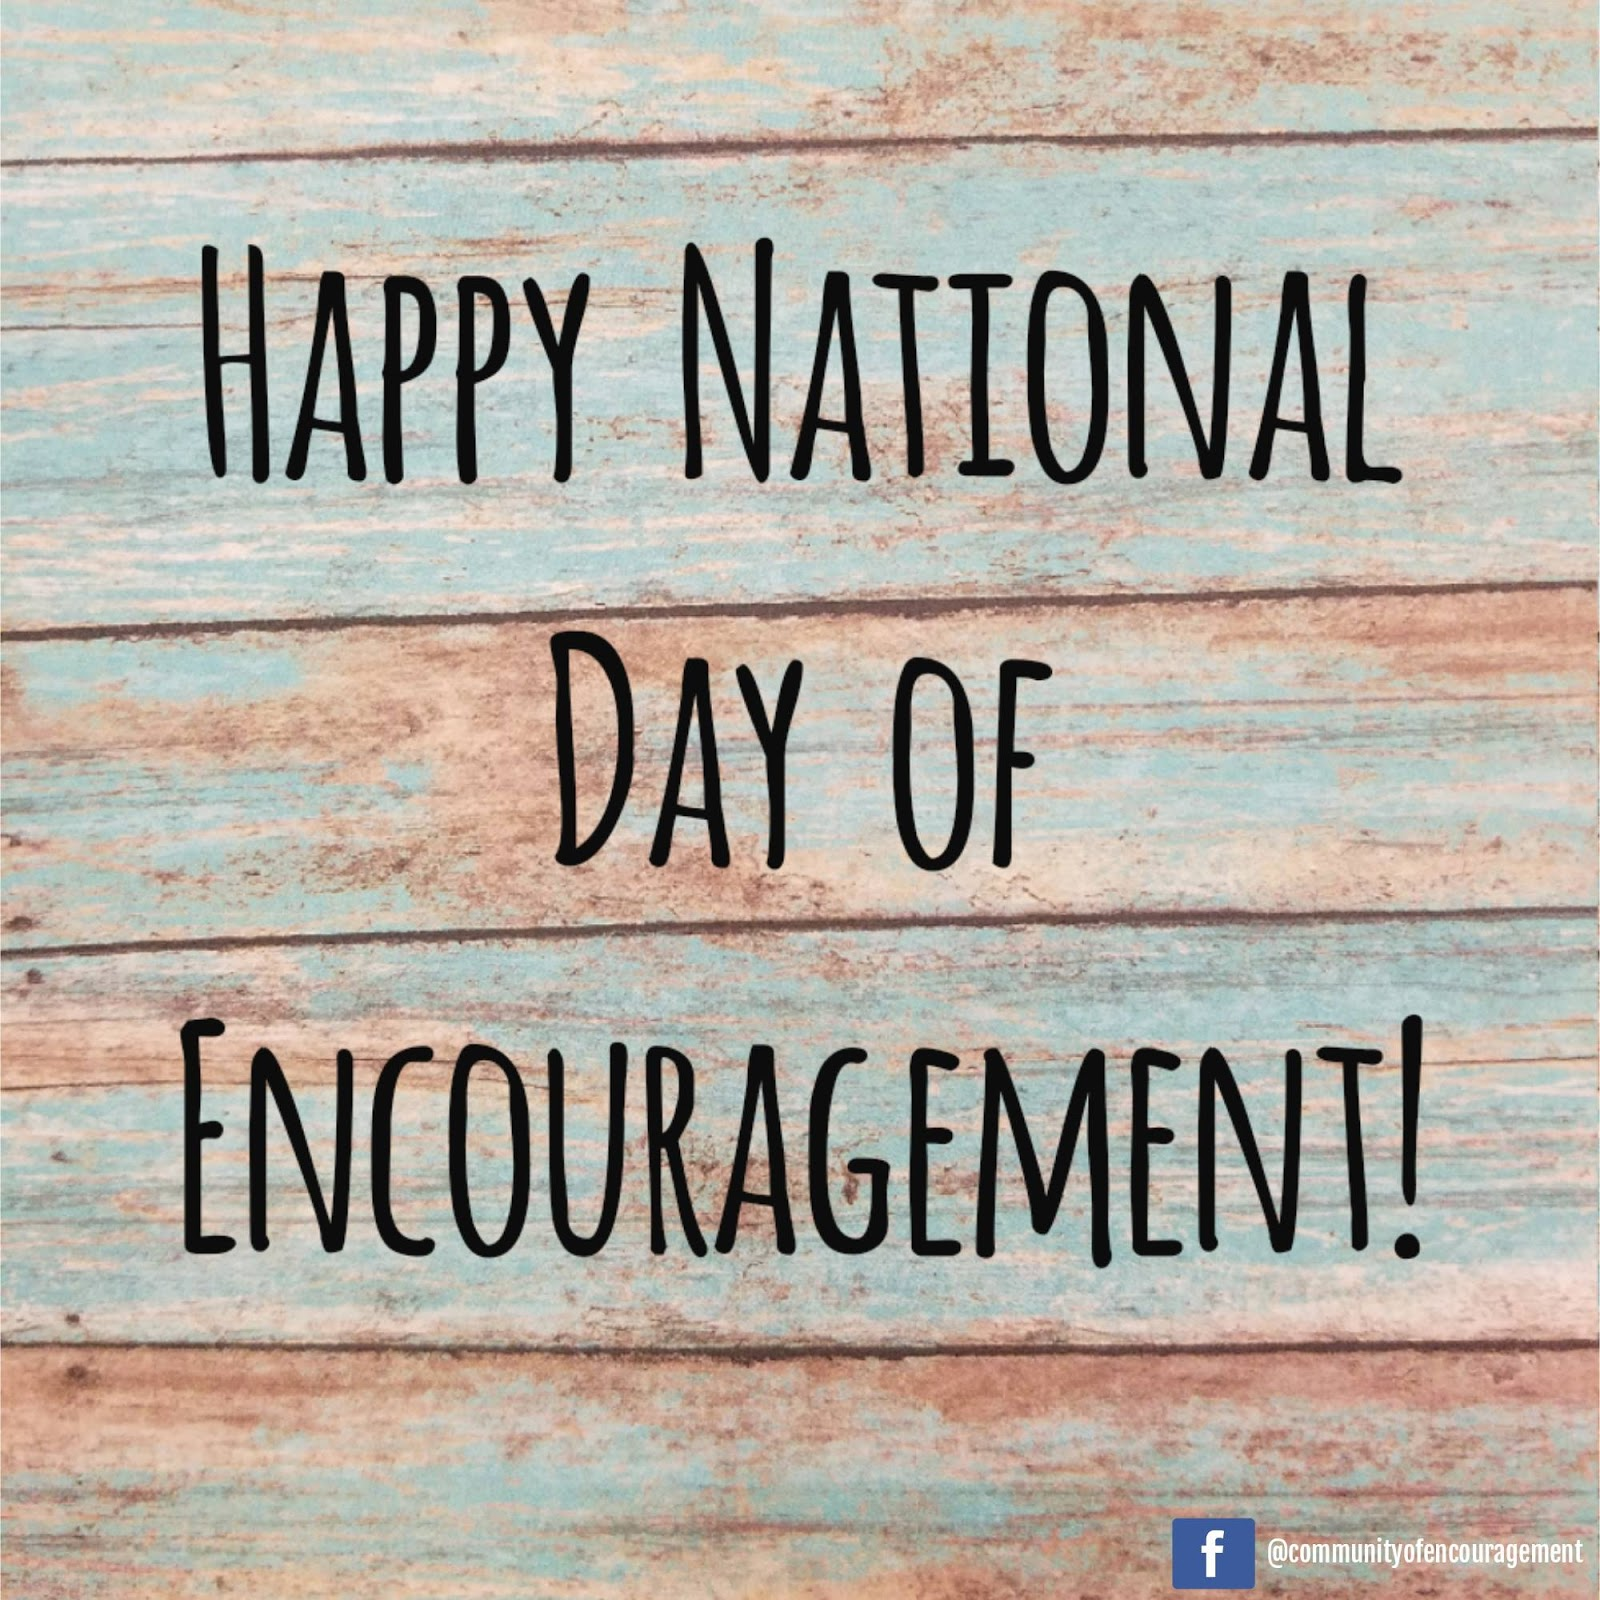 Happy National Day of Encouragement